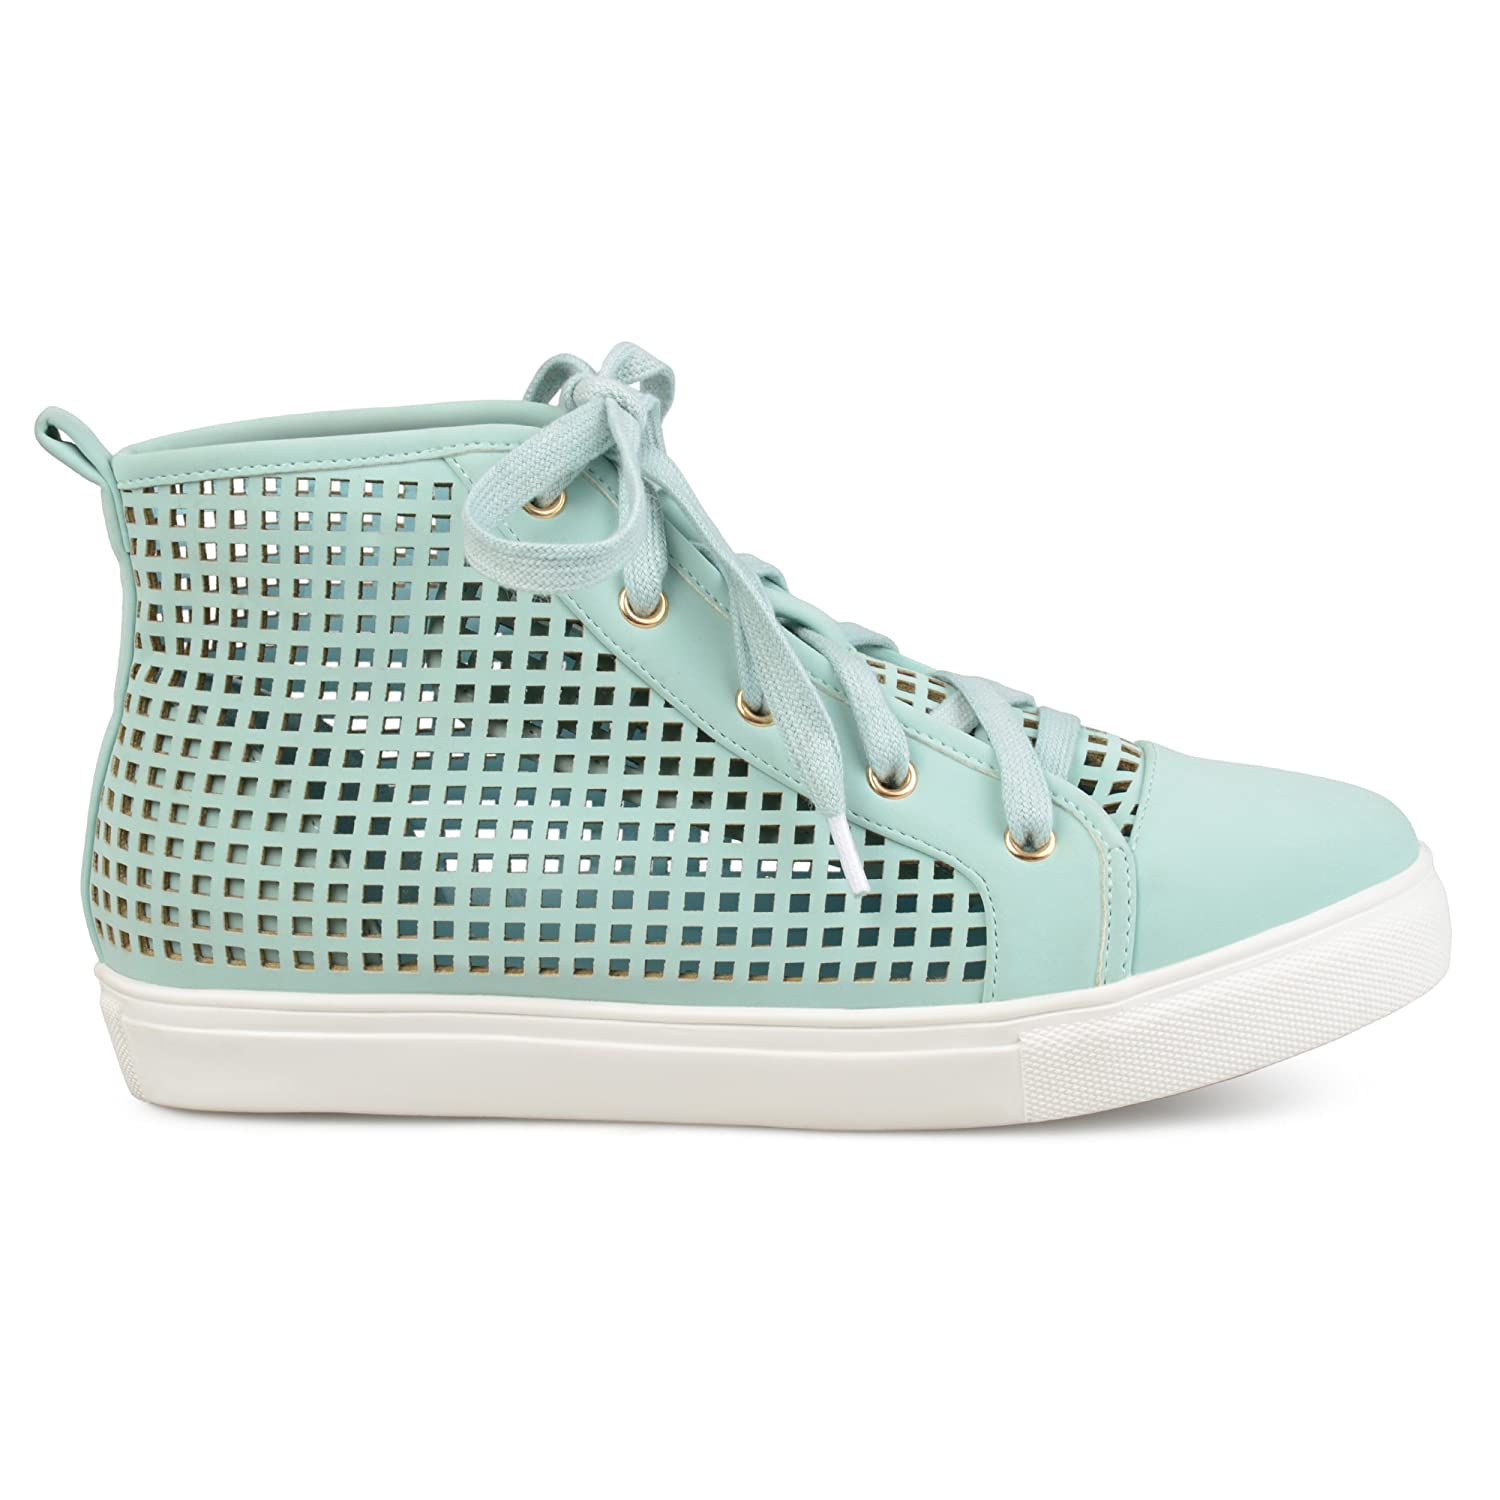 Brinley Co Womens Faux Leather High-Top Lace-up Laser-Cut Sneakers B073RSRWK8 6.5 B(M) US|Mint